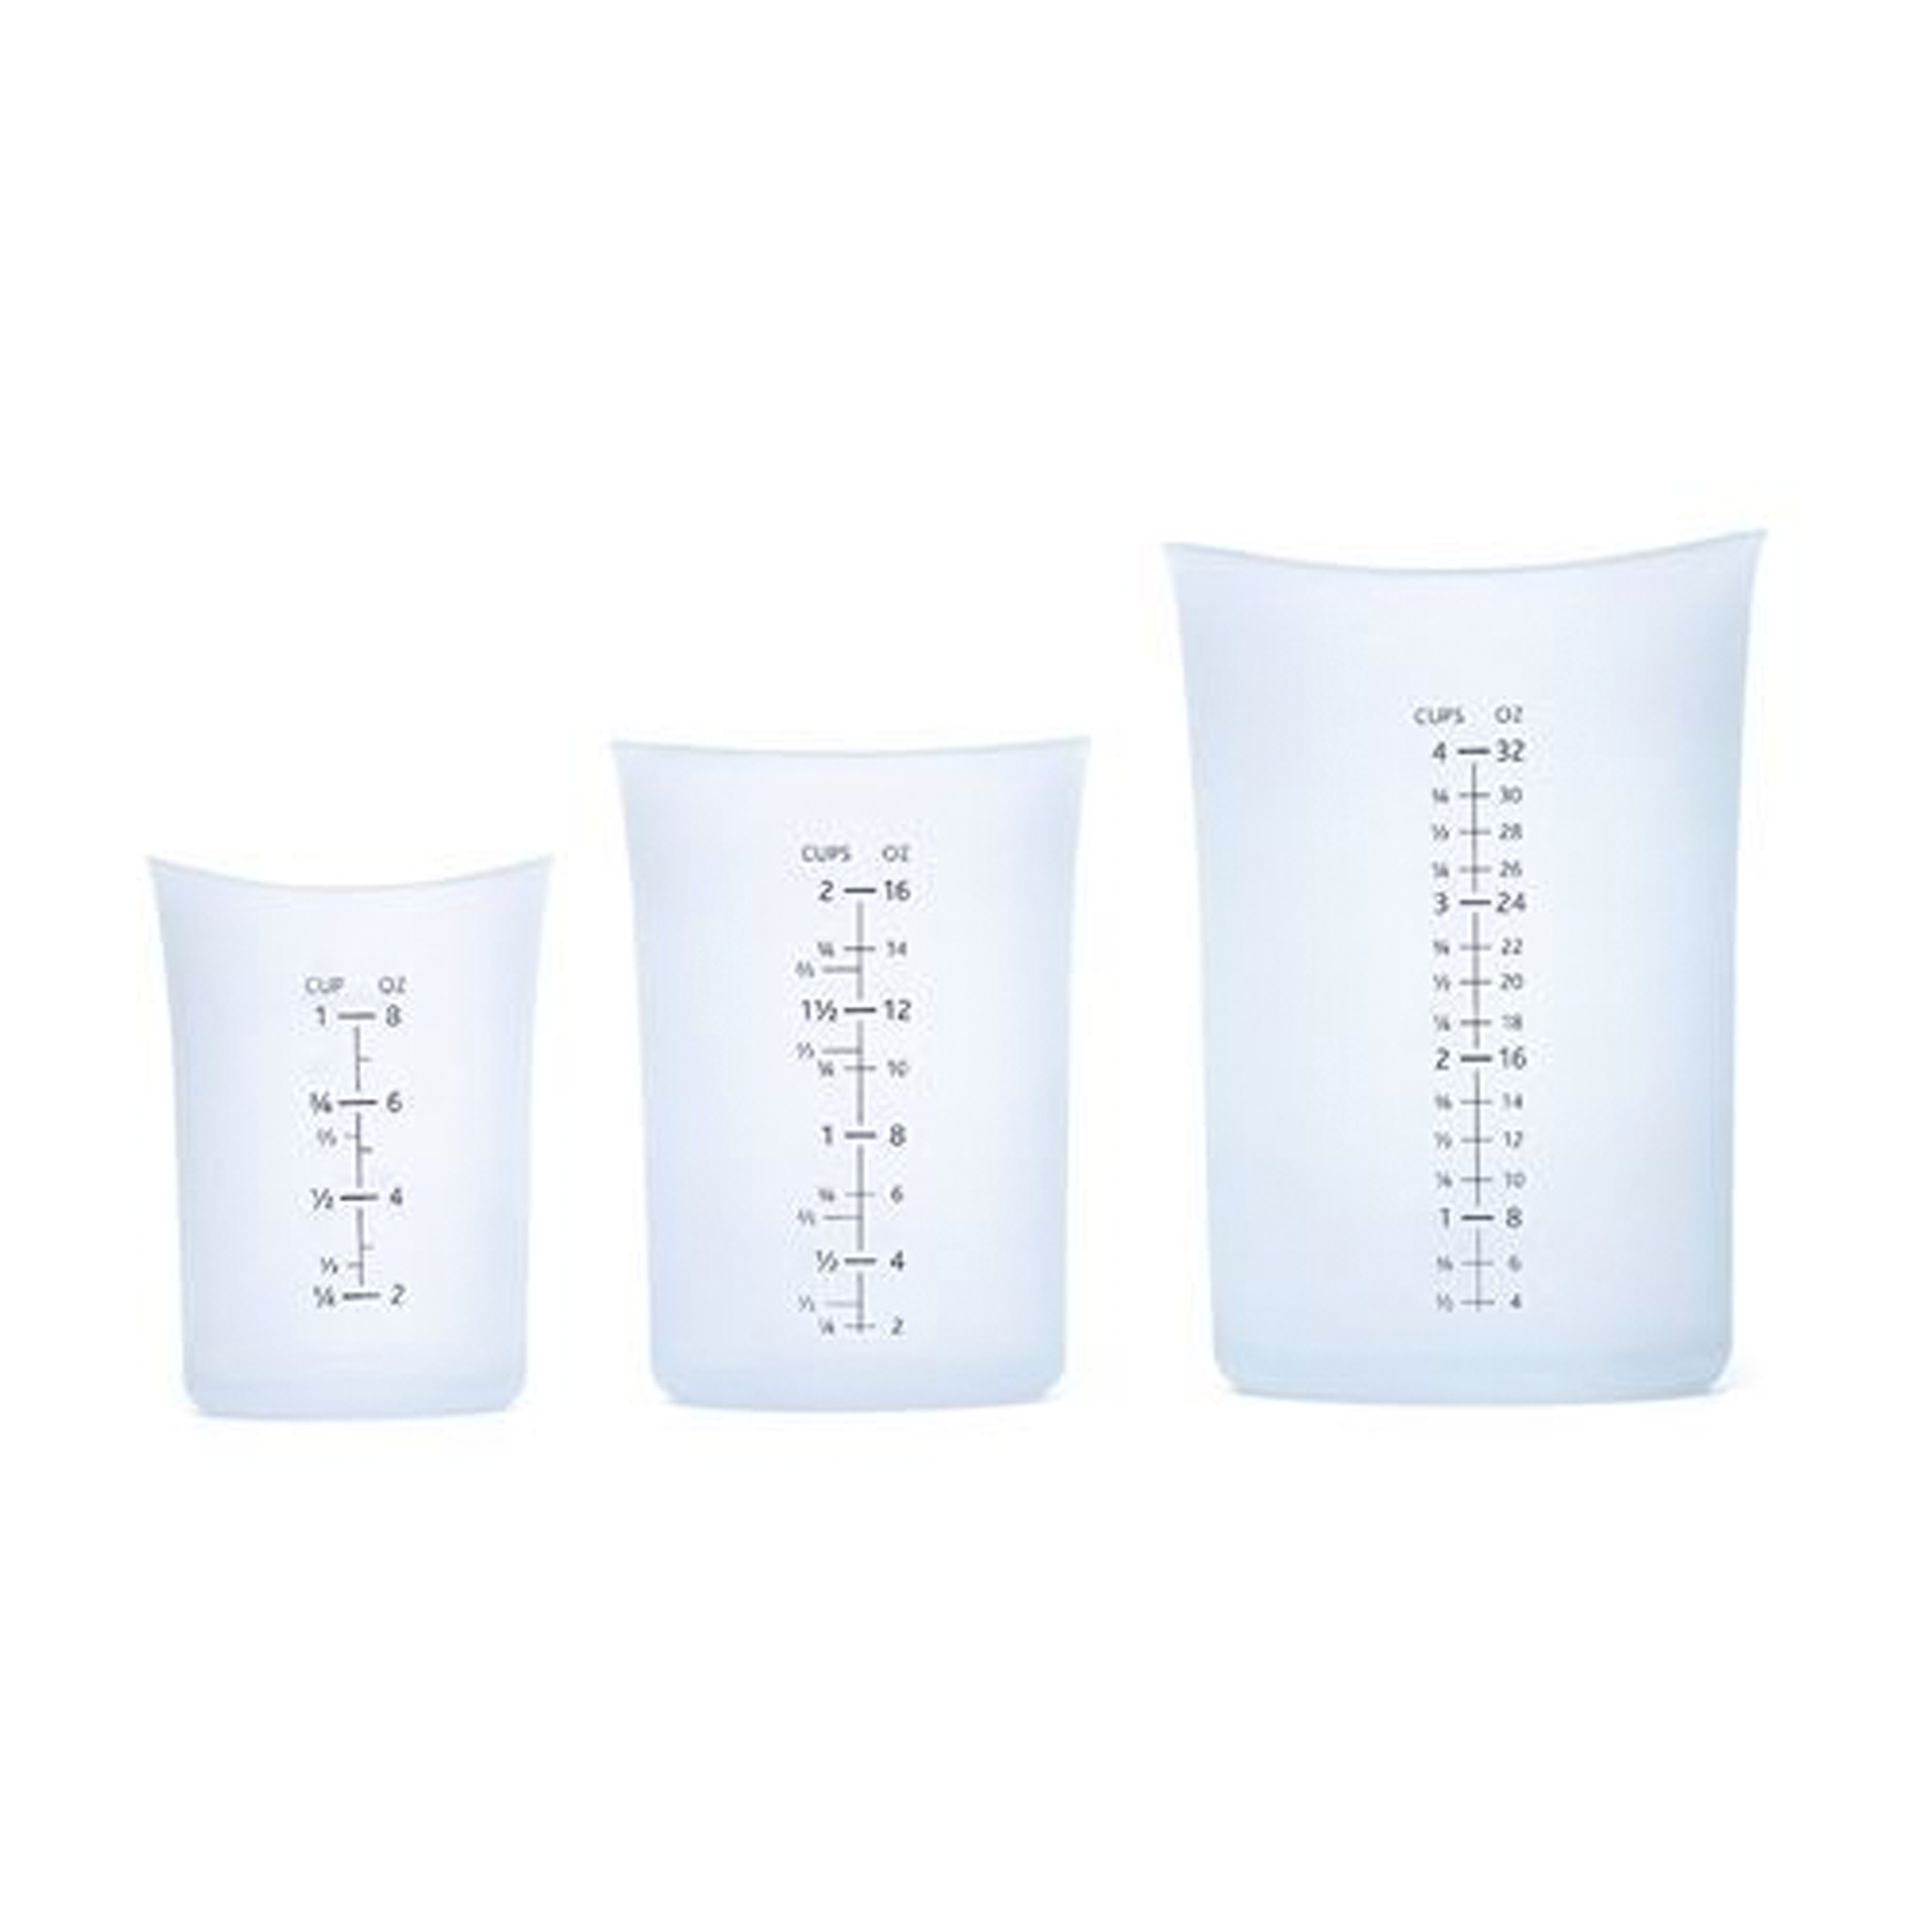 Flex~it Measuring Cup, Set of 3